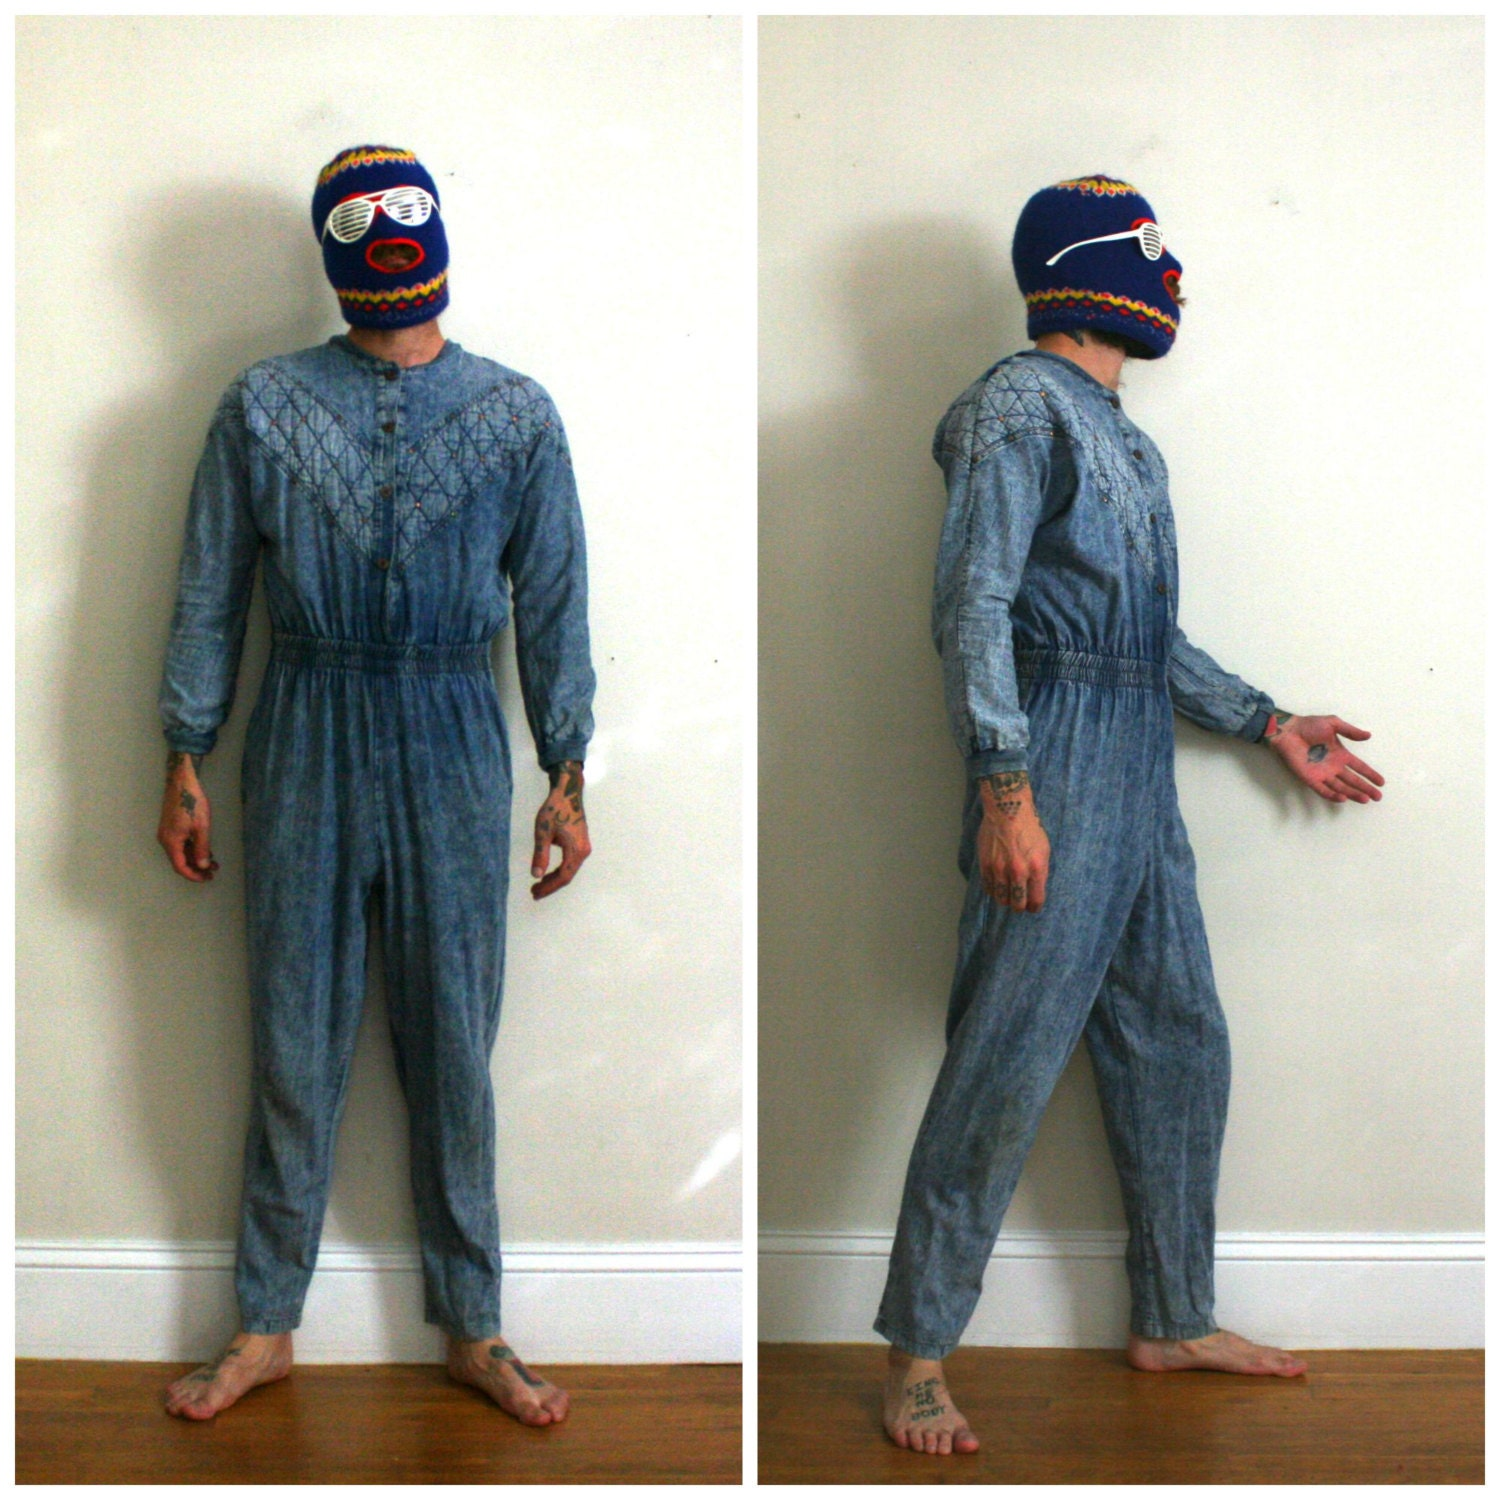 a593175149 Vintage Denim Jumpsuit. Full Body Denim Coveralls. Stretchy Funky Womens  Body Suit. Rare Full Body Denim Outfit. 80s Halloween Costume